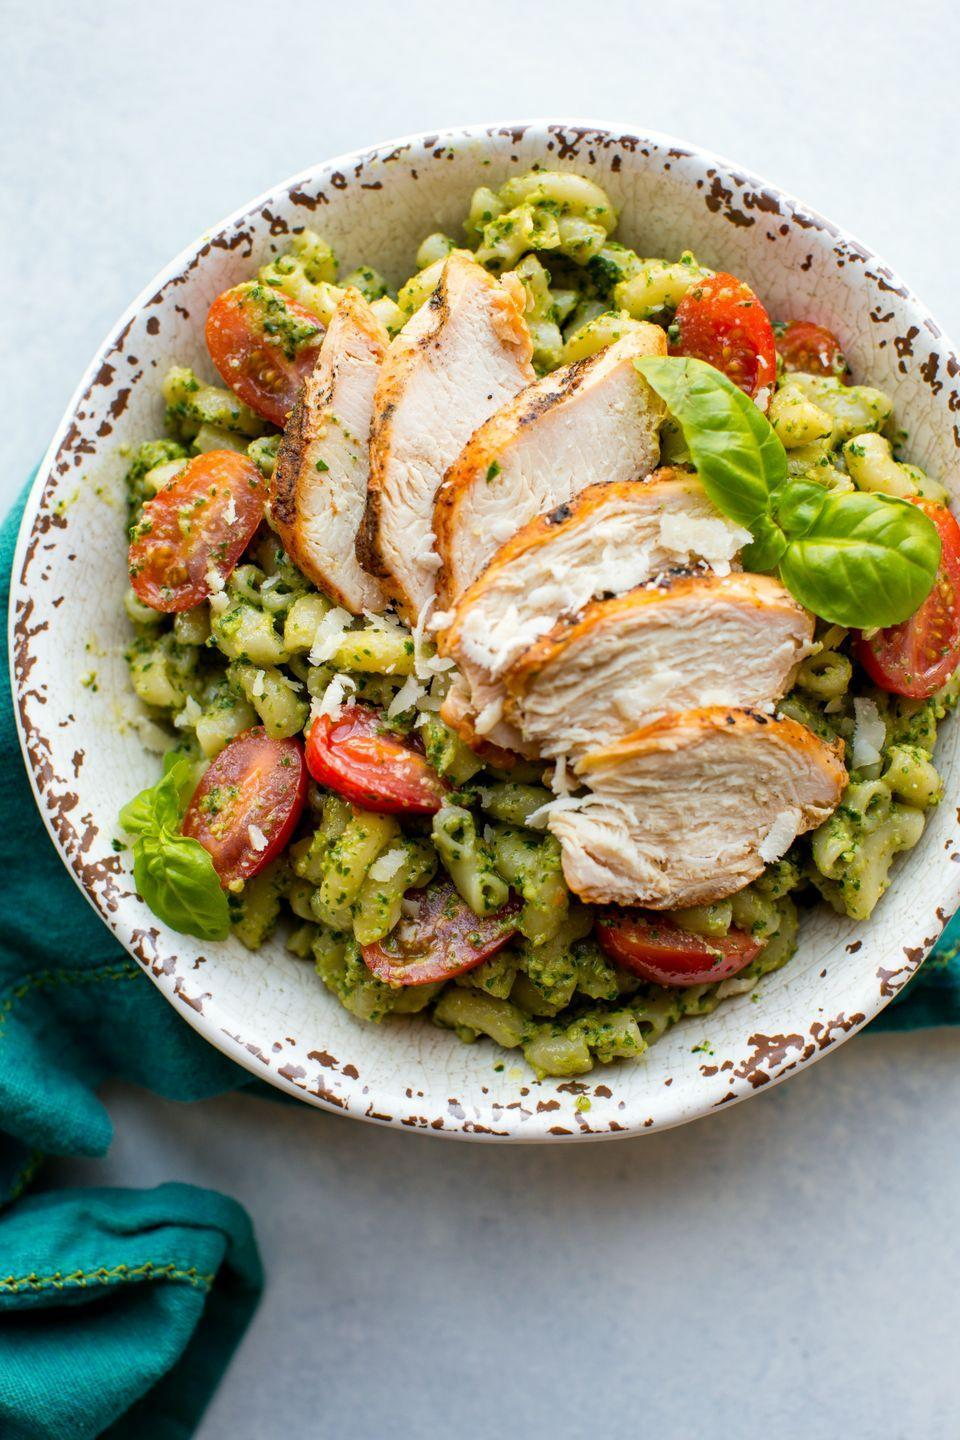 """<p>Using part kale and part basil, this pesto is the next level sauce your pasta deserves.</p><p>Get the recipe from <a href=""""https://www.delish.com/cooking/recipe-ideas/recipes/a52790/kale-pesto-chicken-pasta-recipe/"""" rel=""""nofollow noopener"""" target=""""_blank"""" data-ylk=""""slk:Delish"""" class=""""link rapid-noclick-resp"""">Delish</a>.</p>"""